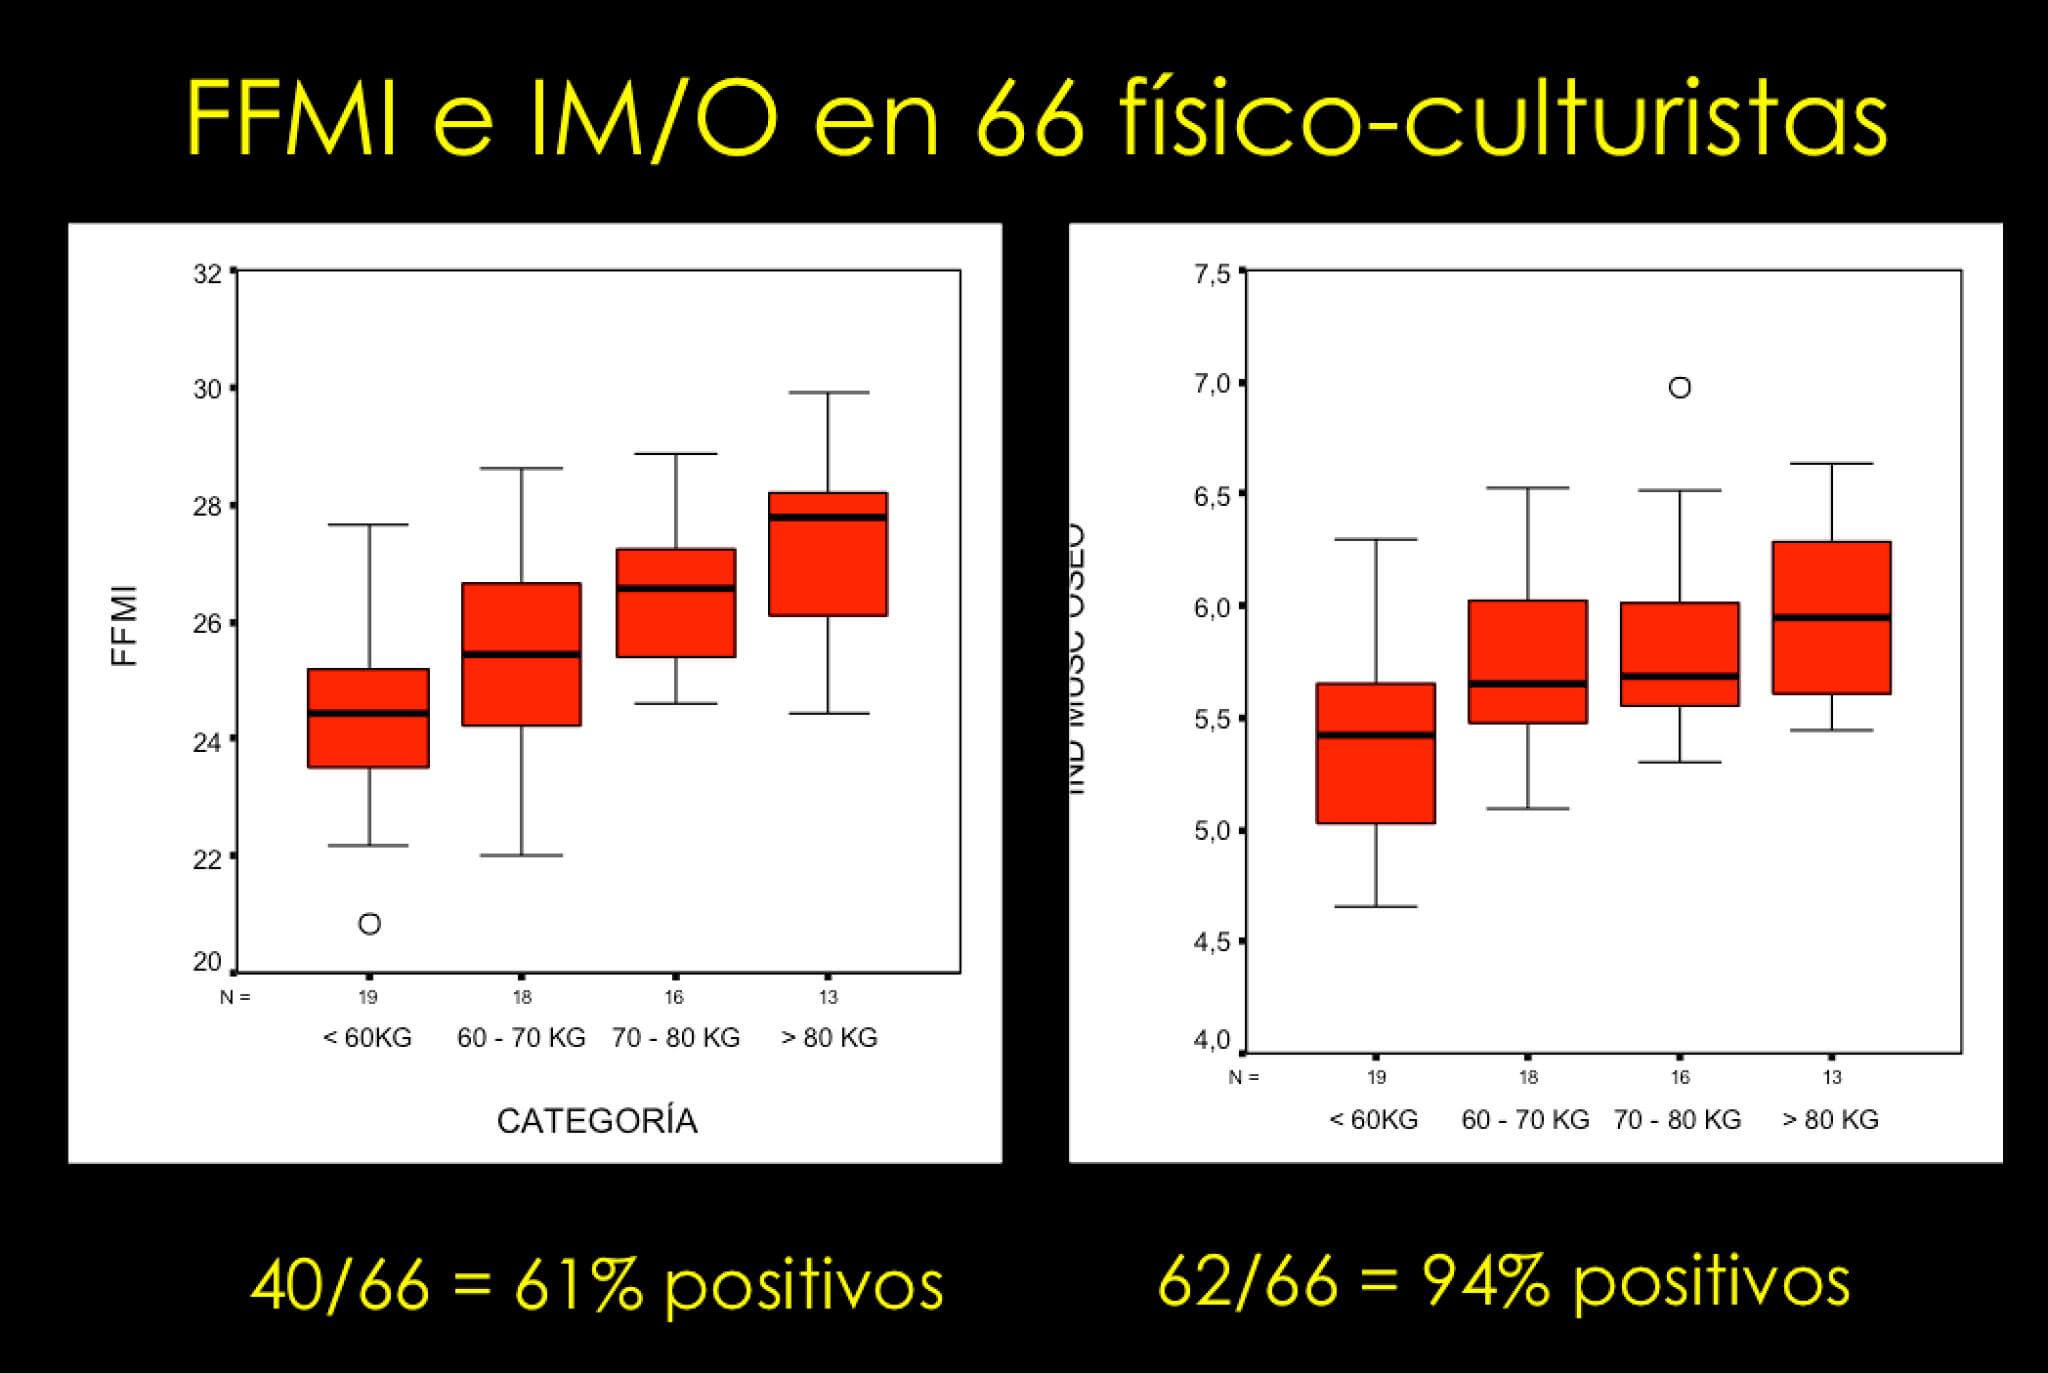 """Data from the 1981 World Amateur Bodybuilding Championships (formerly the IFBB Mr. Universe) - one of the most prestigious shows for bodybuilders who haven't won their pro cards yet. It's highly likely that just about everyone in the contest was on steroids. On the left, an FFMI of 25 """"caught"""" 61% of the participants. On the right, a muscle:bone ratio of 5:1 """"caught"""" 94%."""